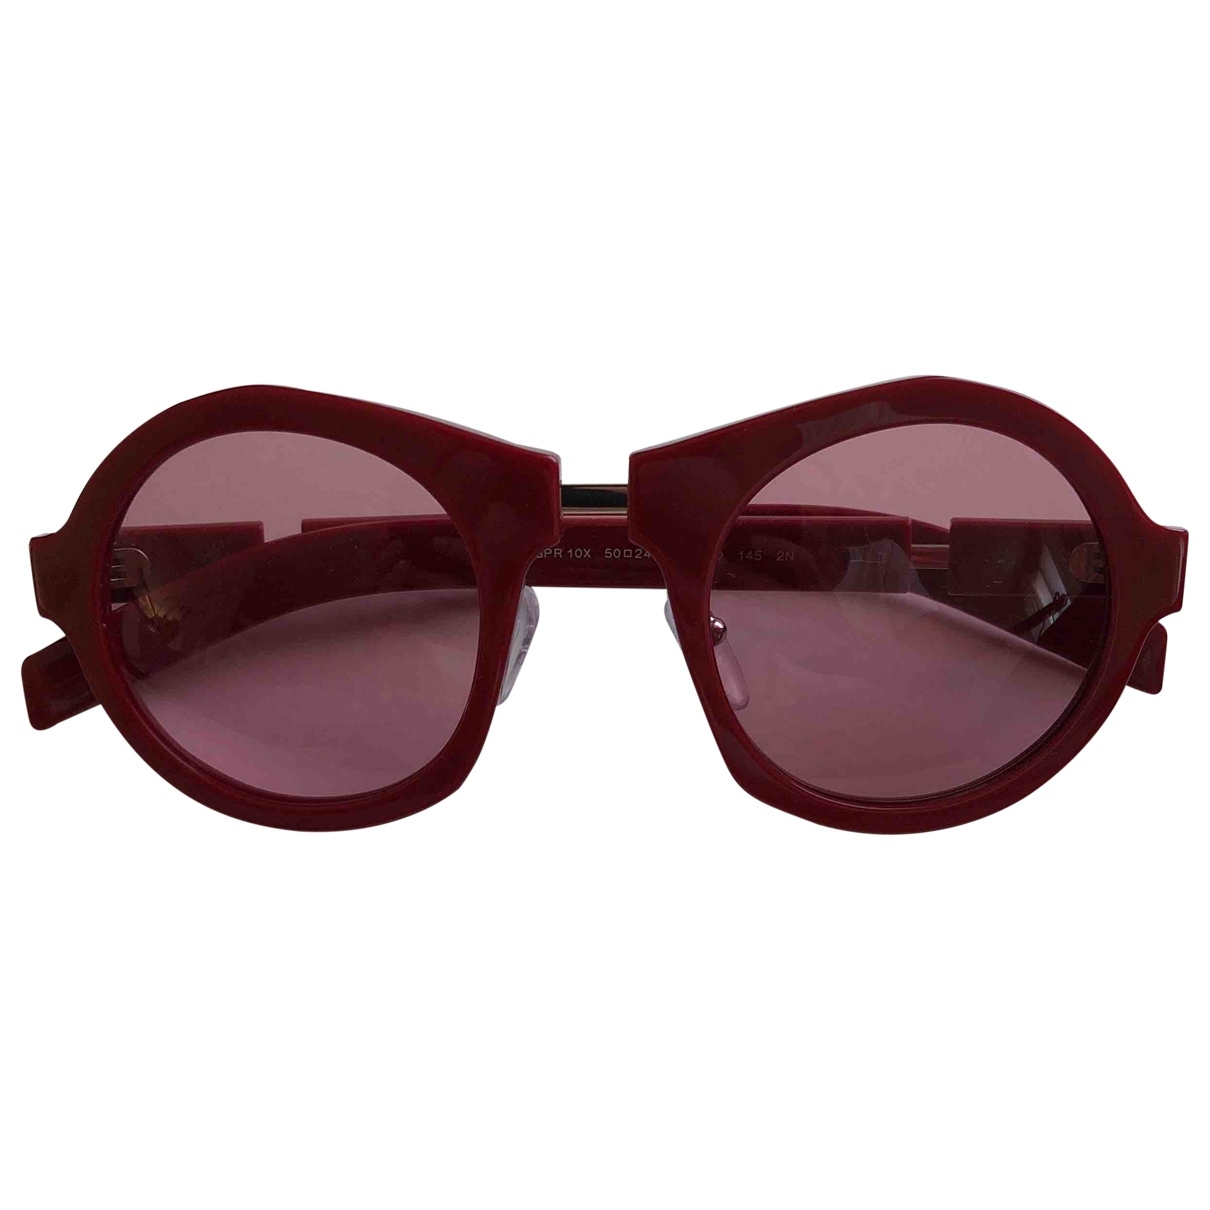 Prada \N Red Sunglasses for Women \N